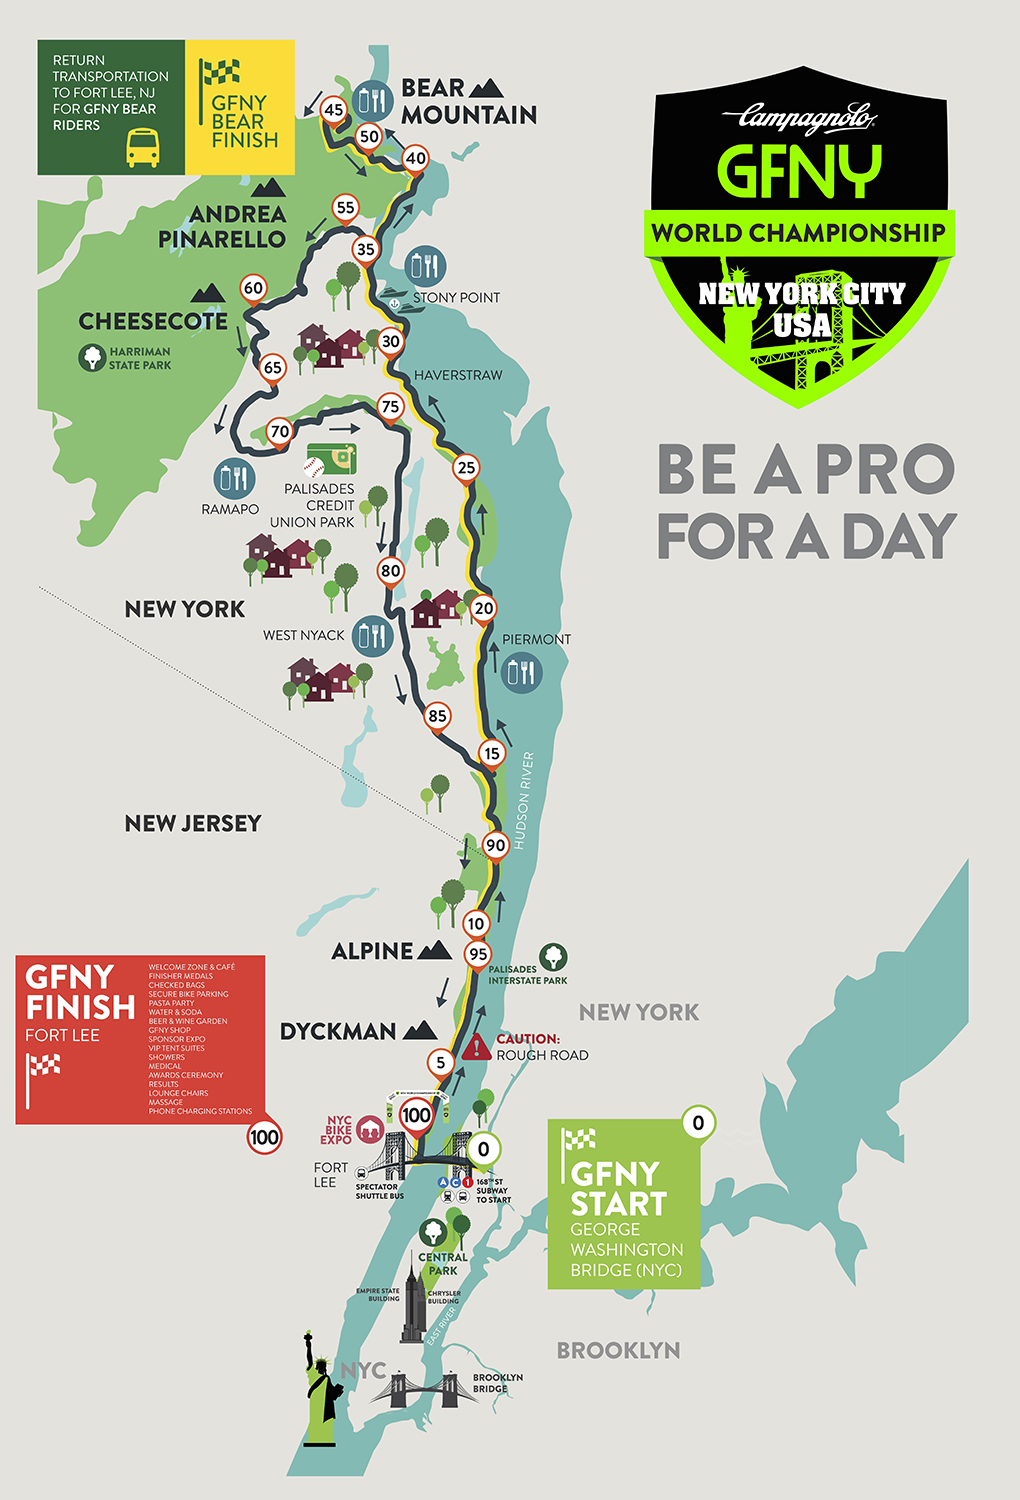 Course – GFNY World Championship New York City | GFNY Cycling